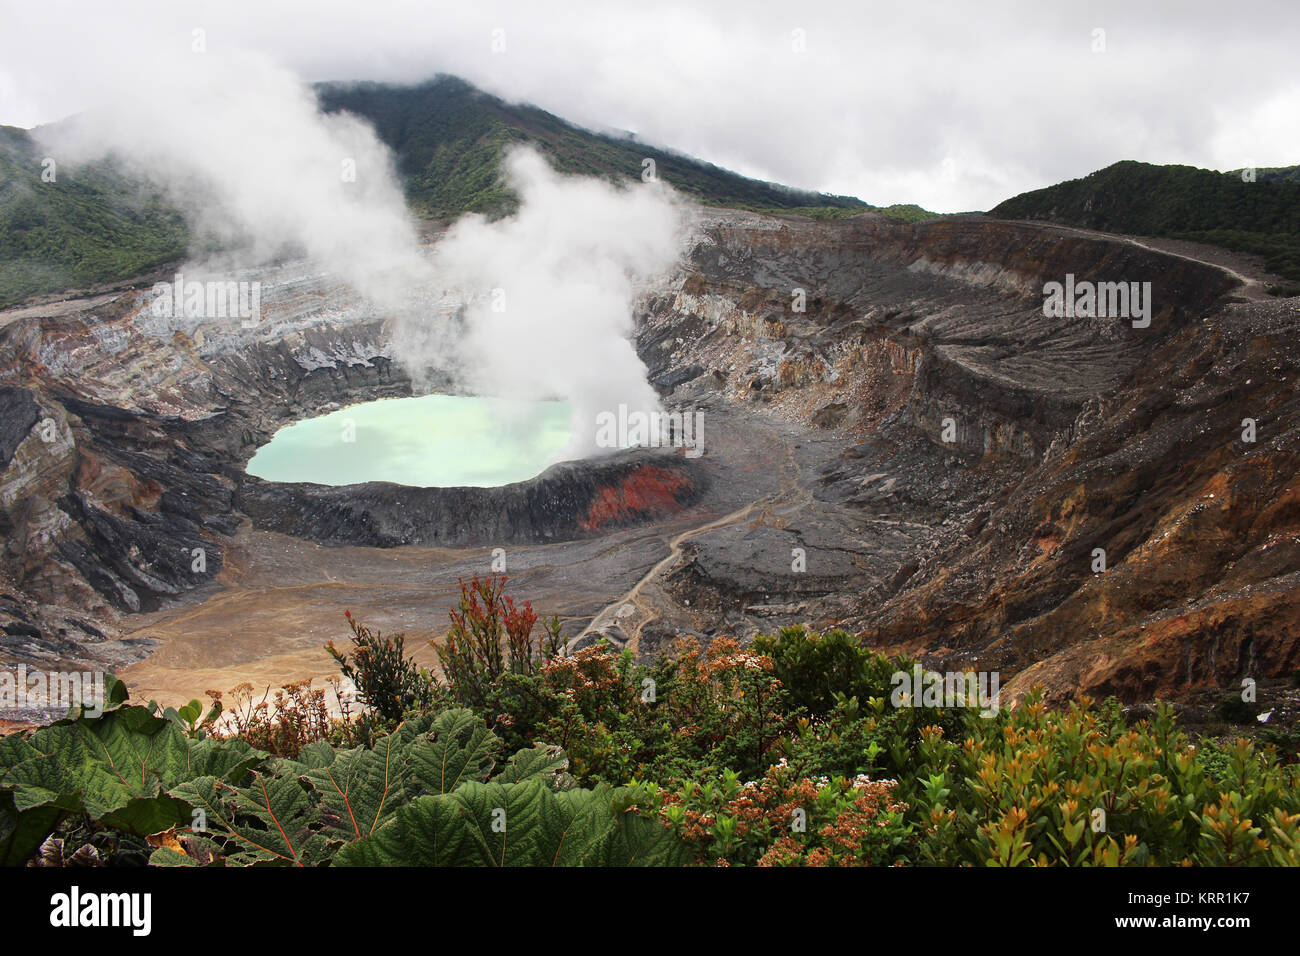 A hot sulfuric acid lake sits in the crater of Costa Rica's Poas Volcano. - Stock Image